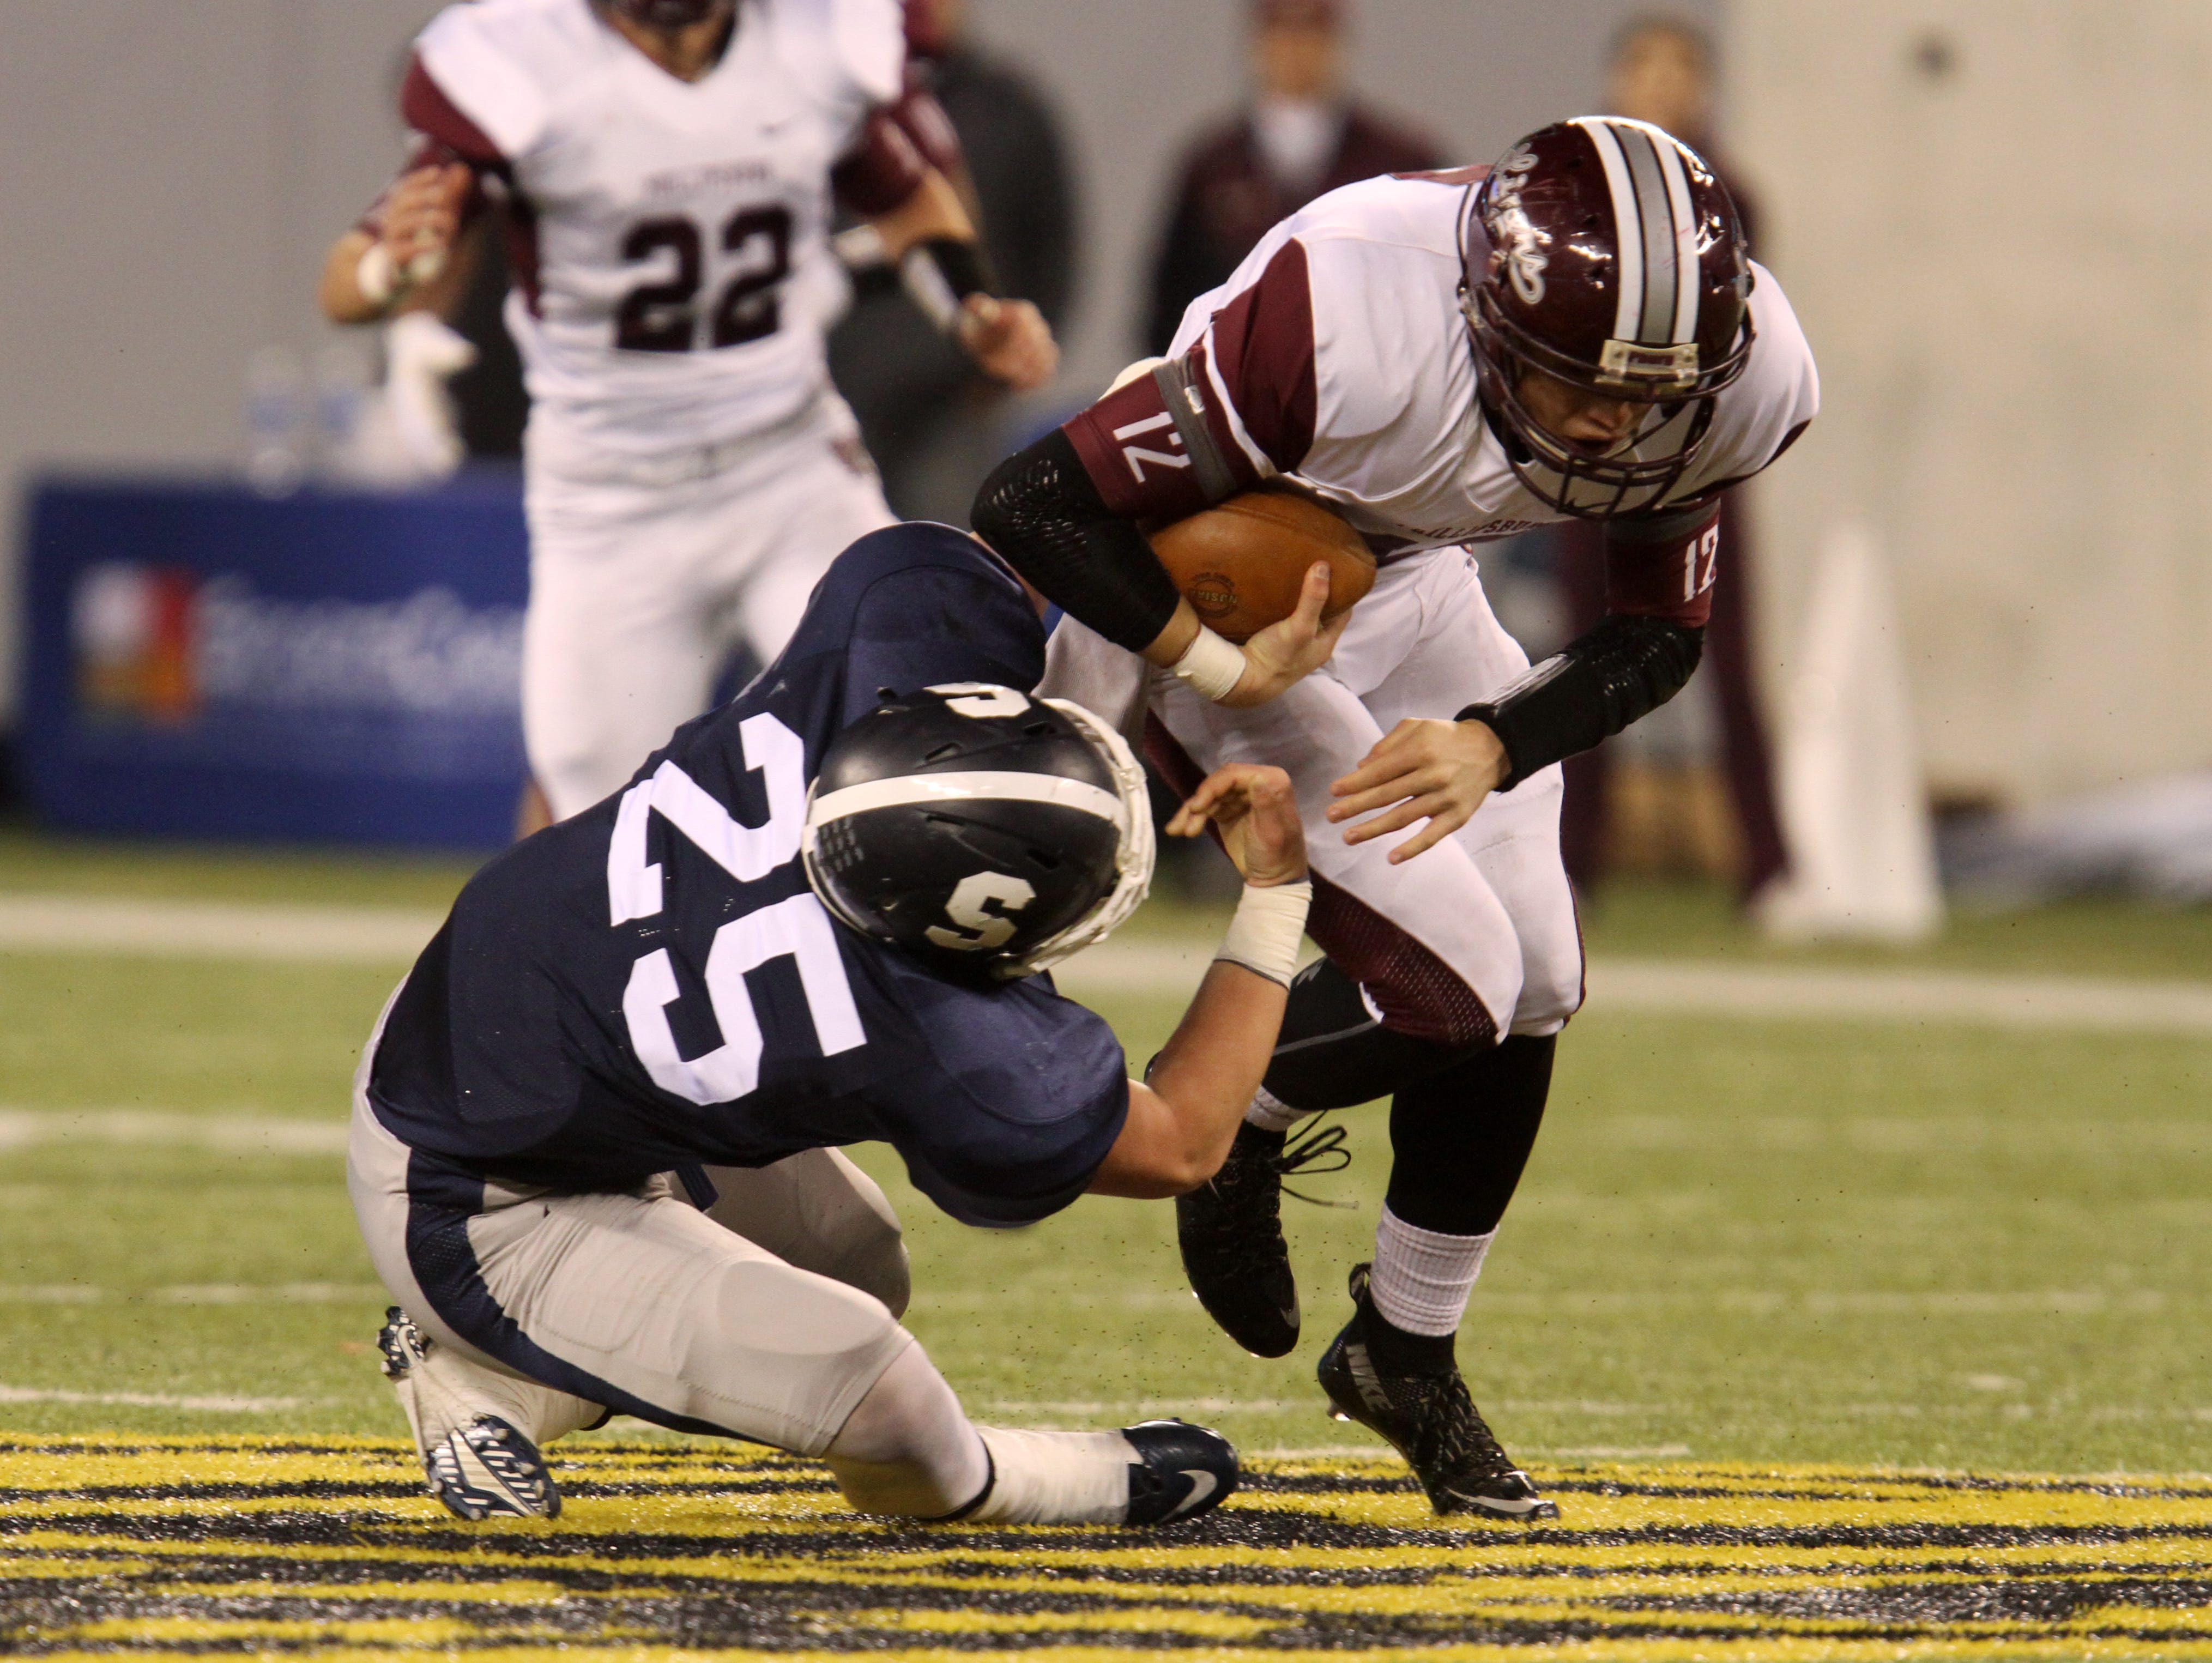 Middletown South's #25 Kevin Higgins tries to tackle Phillipsburg's QB #12 Danny Fisher in the first quarter during the North 2 Group IV game of the 2015 NJSIAA/MetLife Stadium High School Football Championships at MetLife Stadium in East Rutherford, NJ Saturday December 5, 2015.